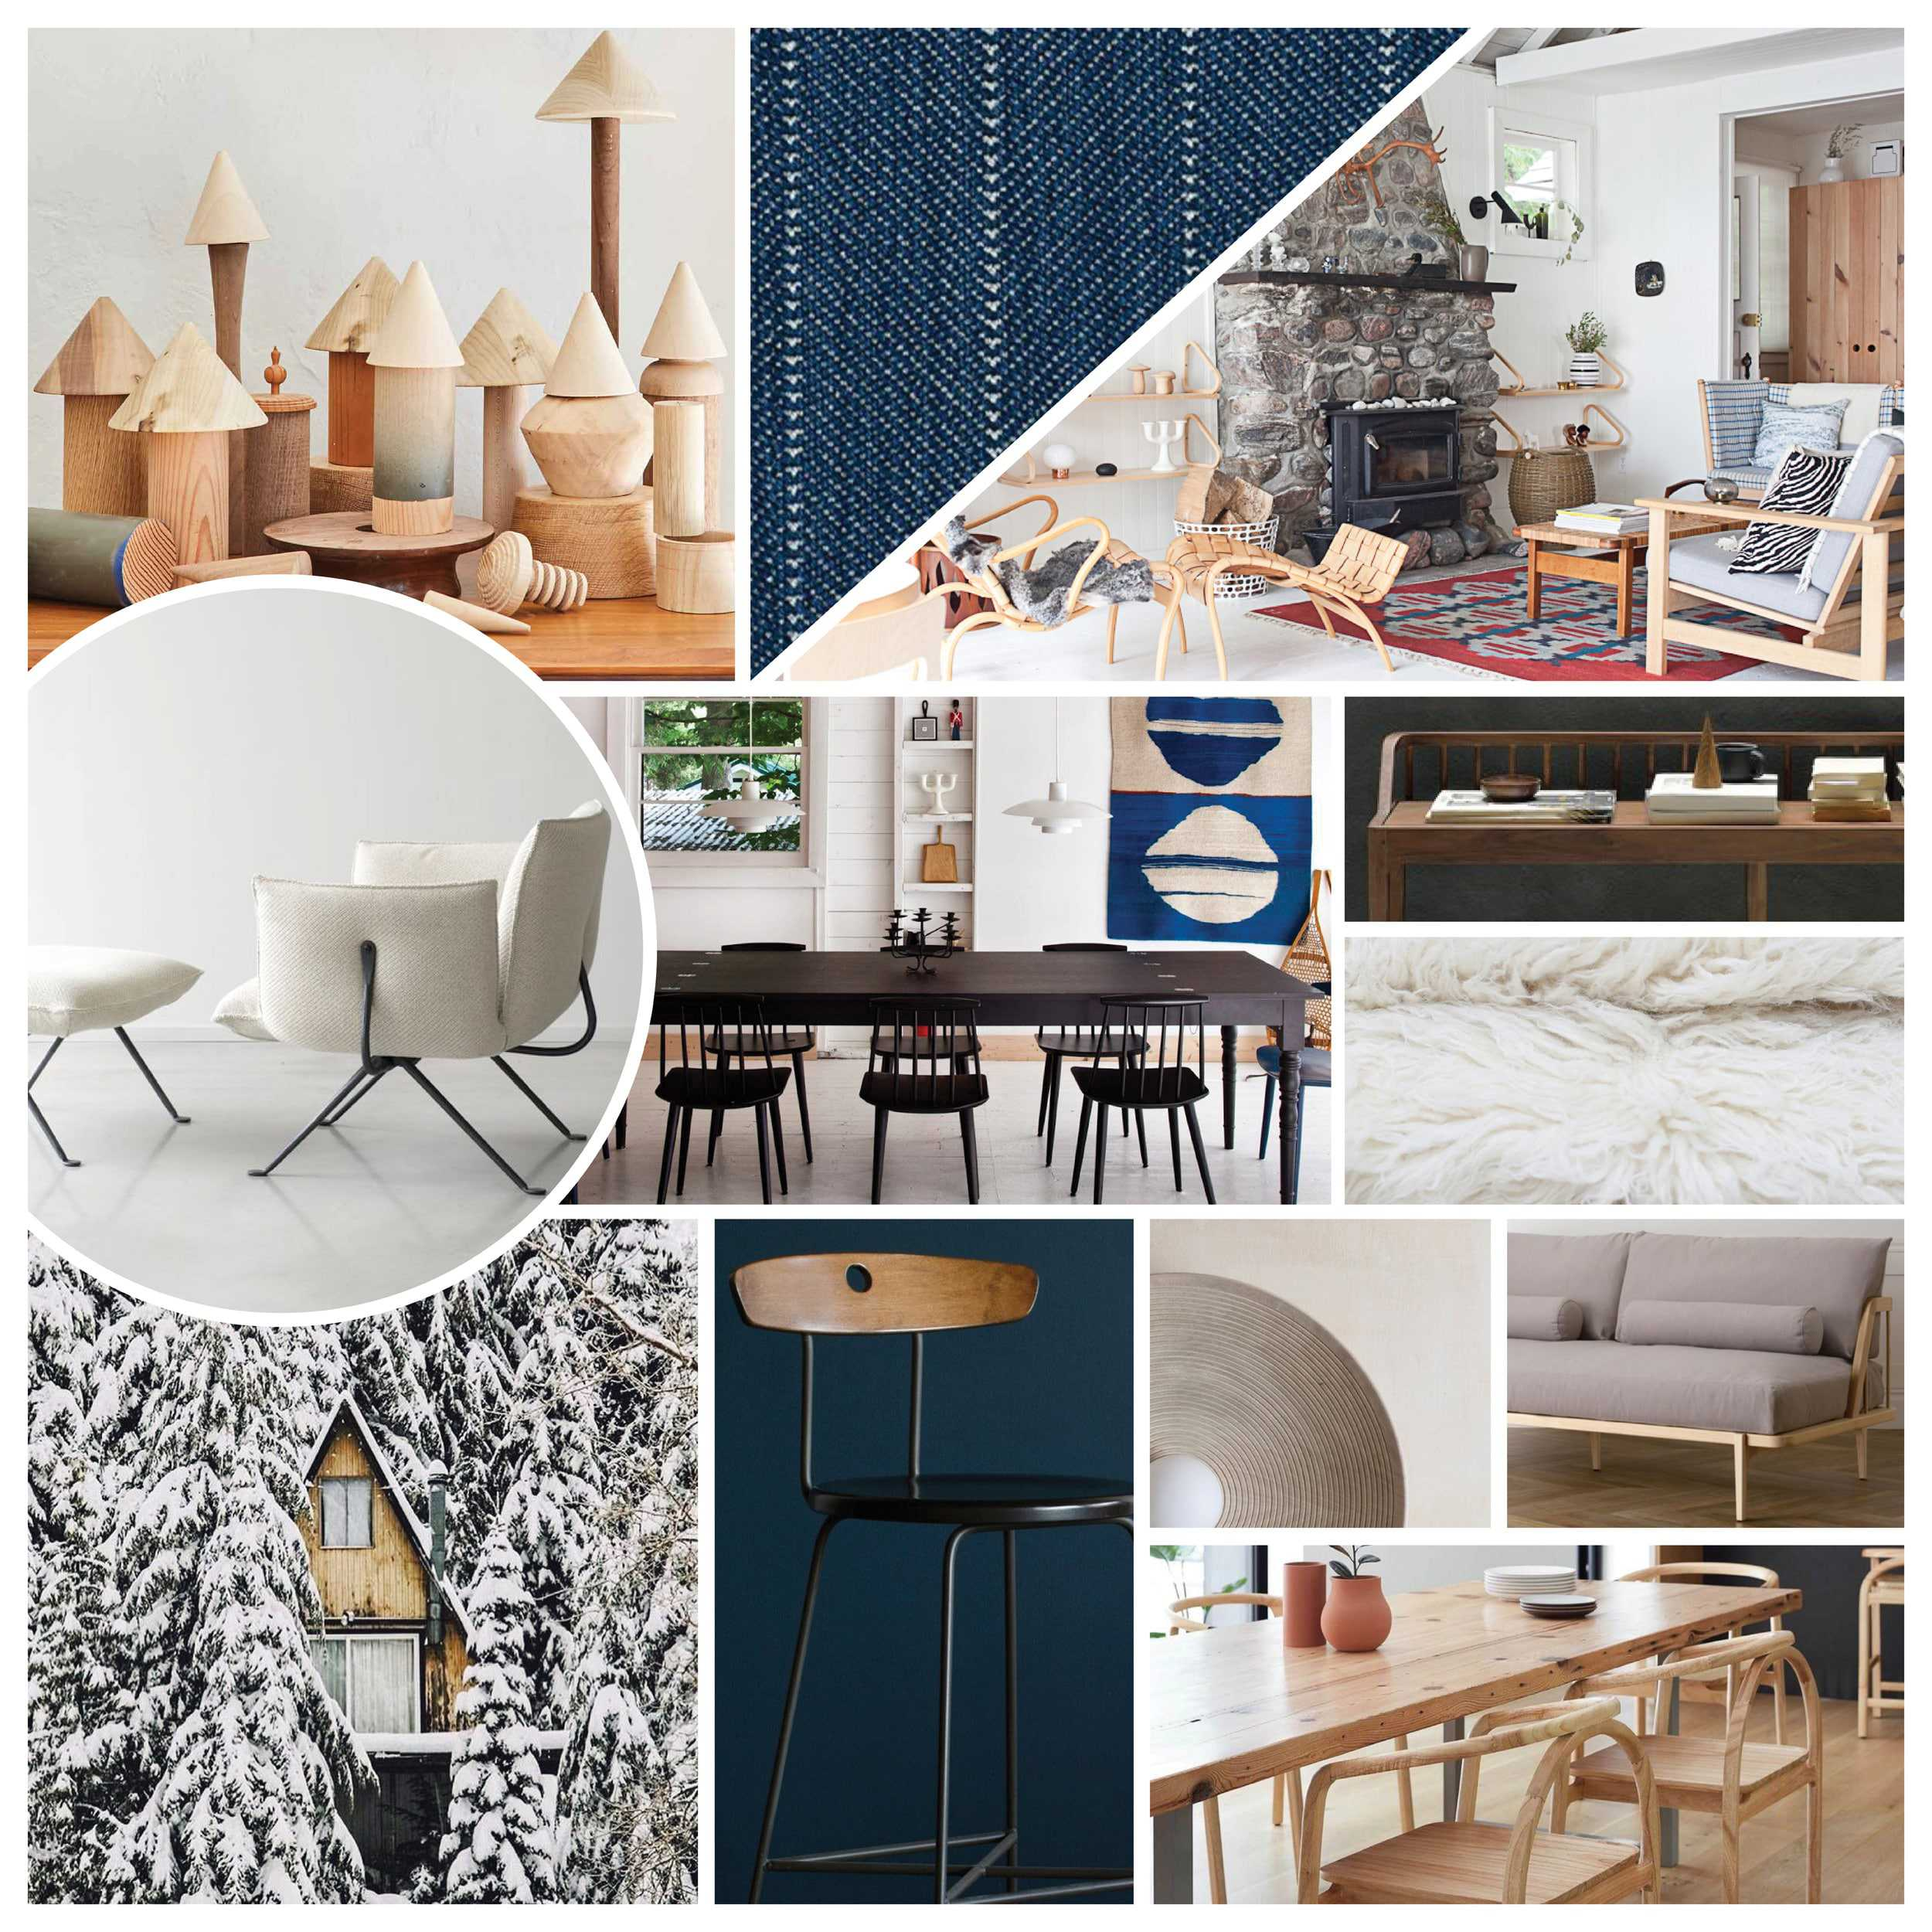 Emily Henderson Mountain Fixer Overall Style Furniture Decor Moodboard 1.25.19